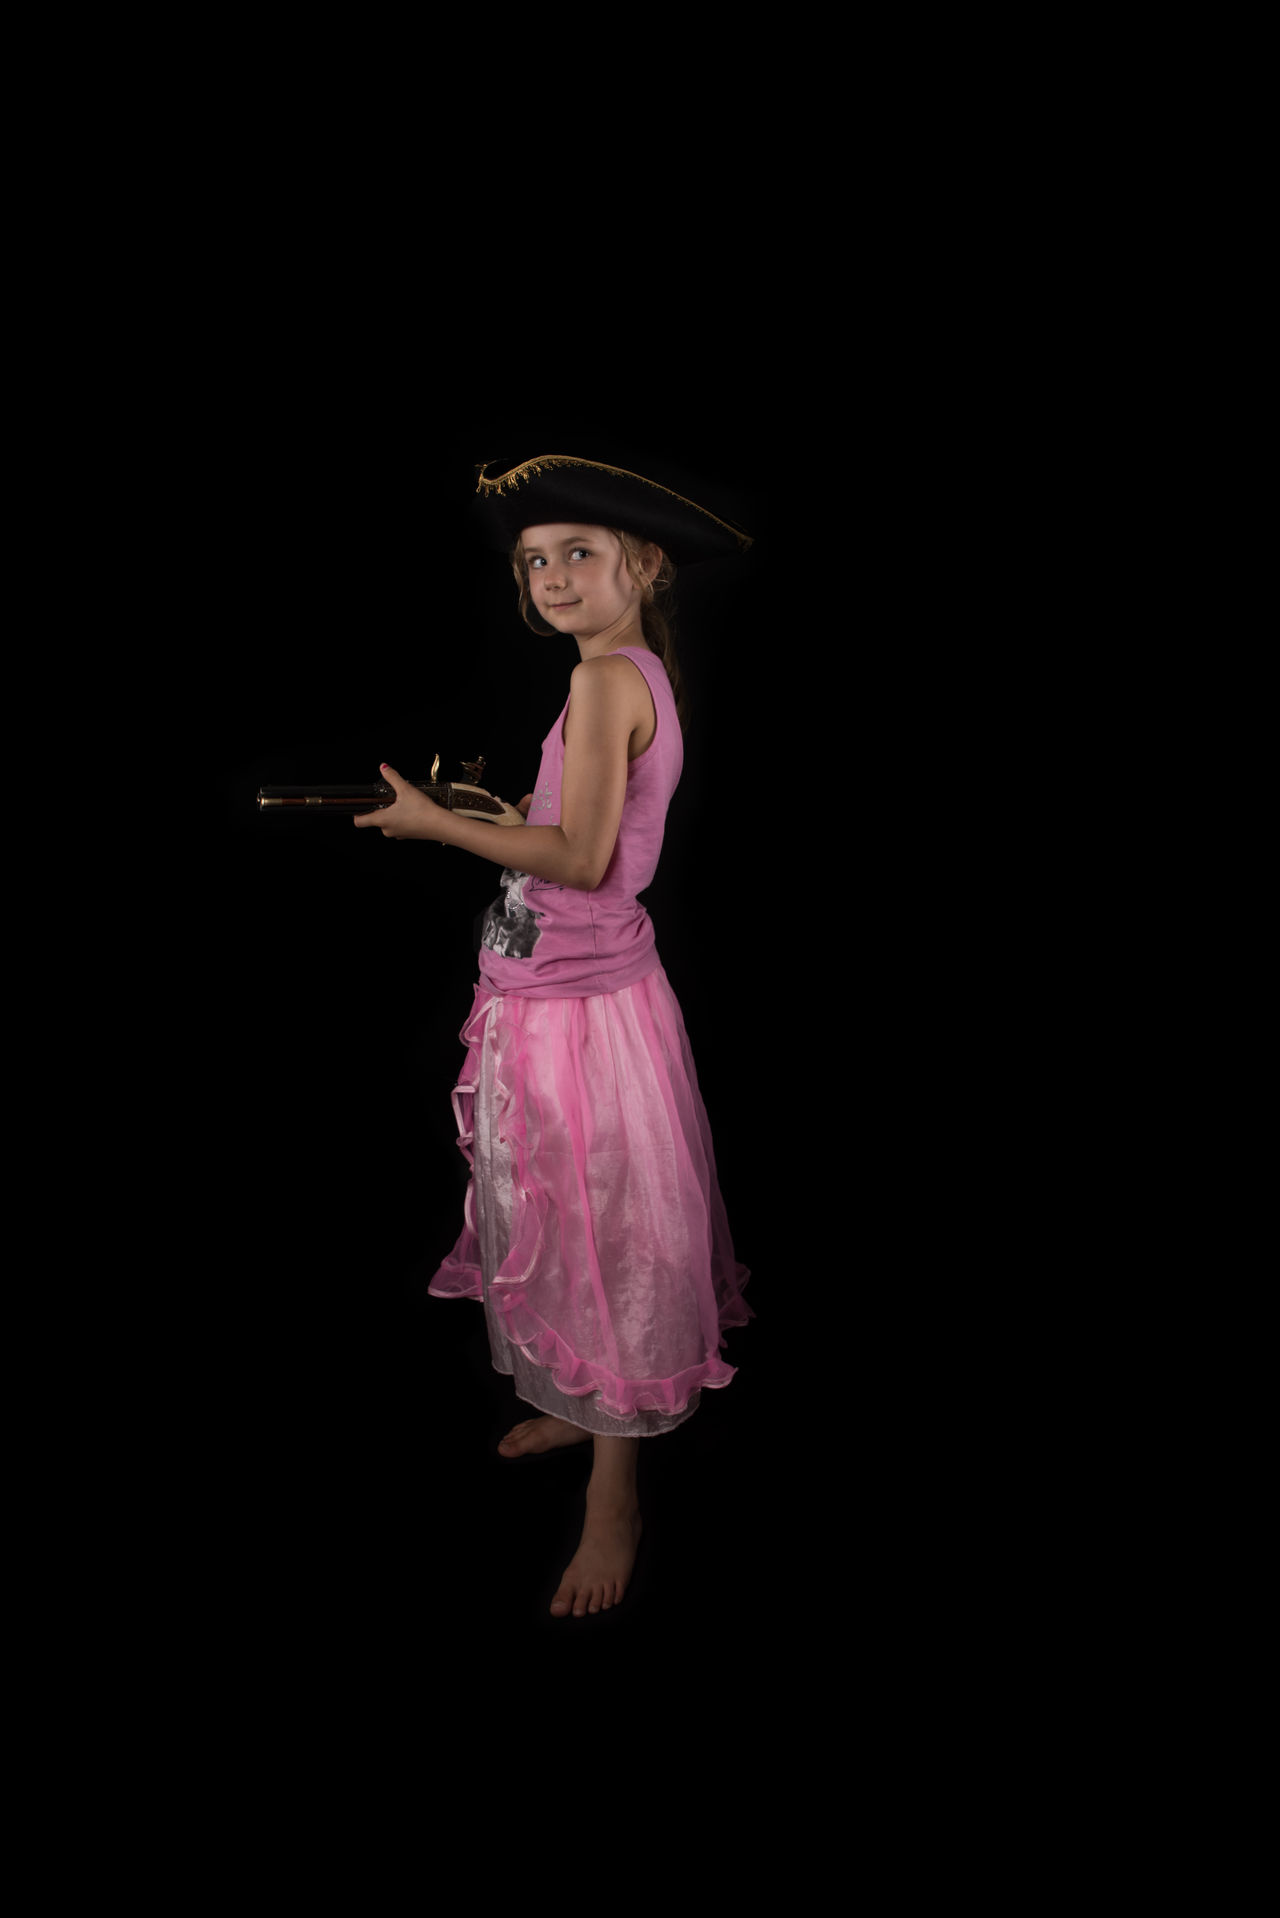 Black Background Casual Clothing Child Confidence  Front View Full Length Girl Girly Hat In Front Of Looking At Camera Person Pink Color Pirate Hat Pirates Playing Standing Studio Shot Young Adult Young Women